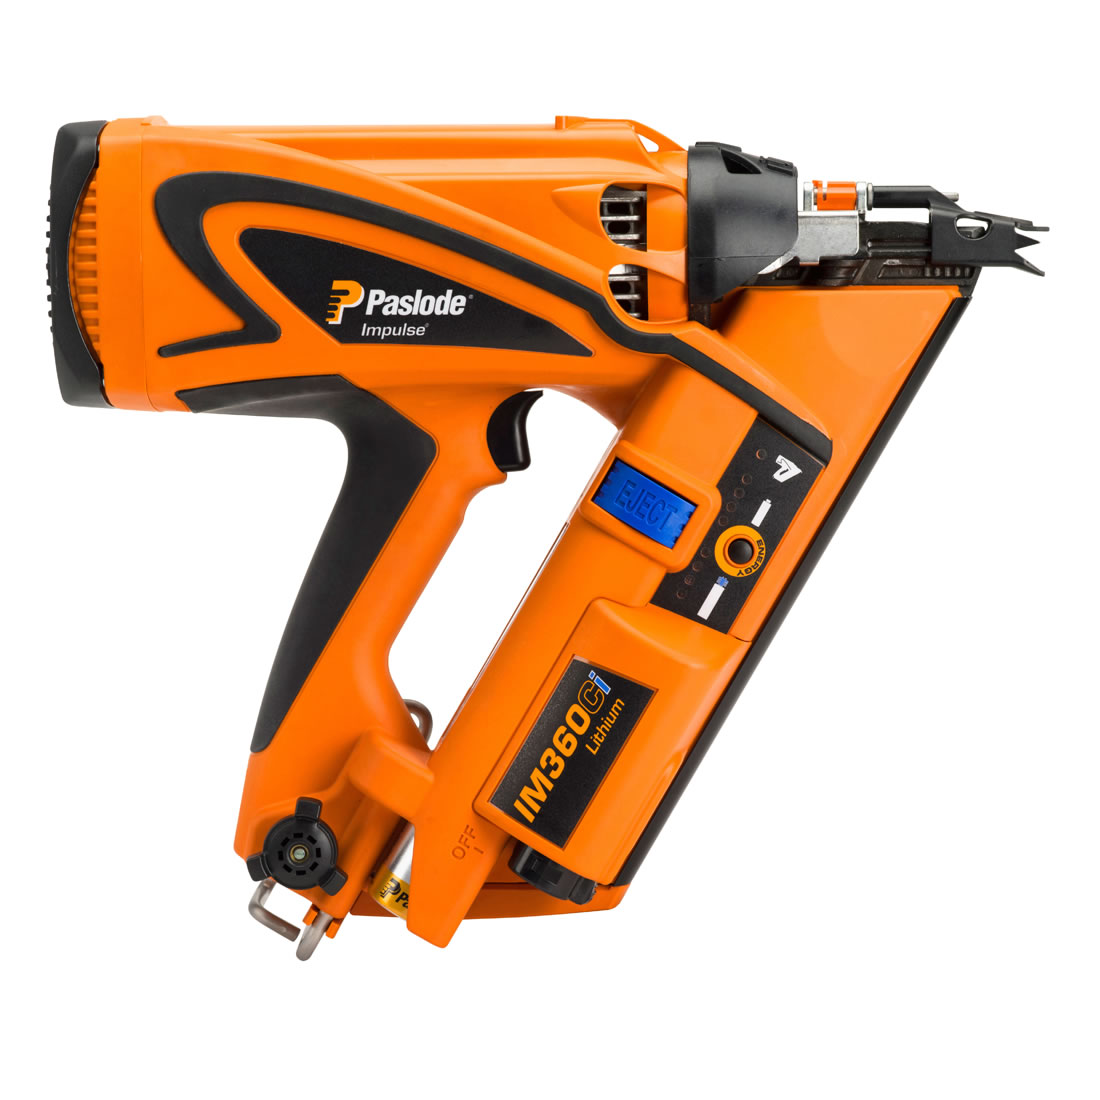 tool hire and equipment hss hire